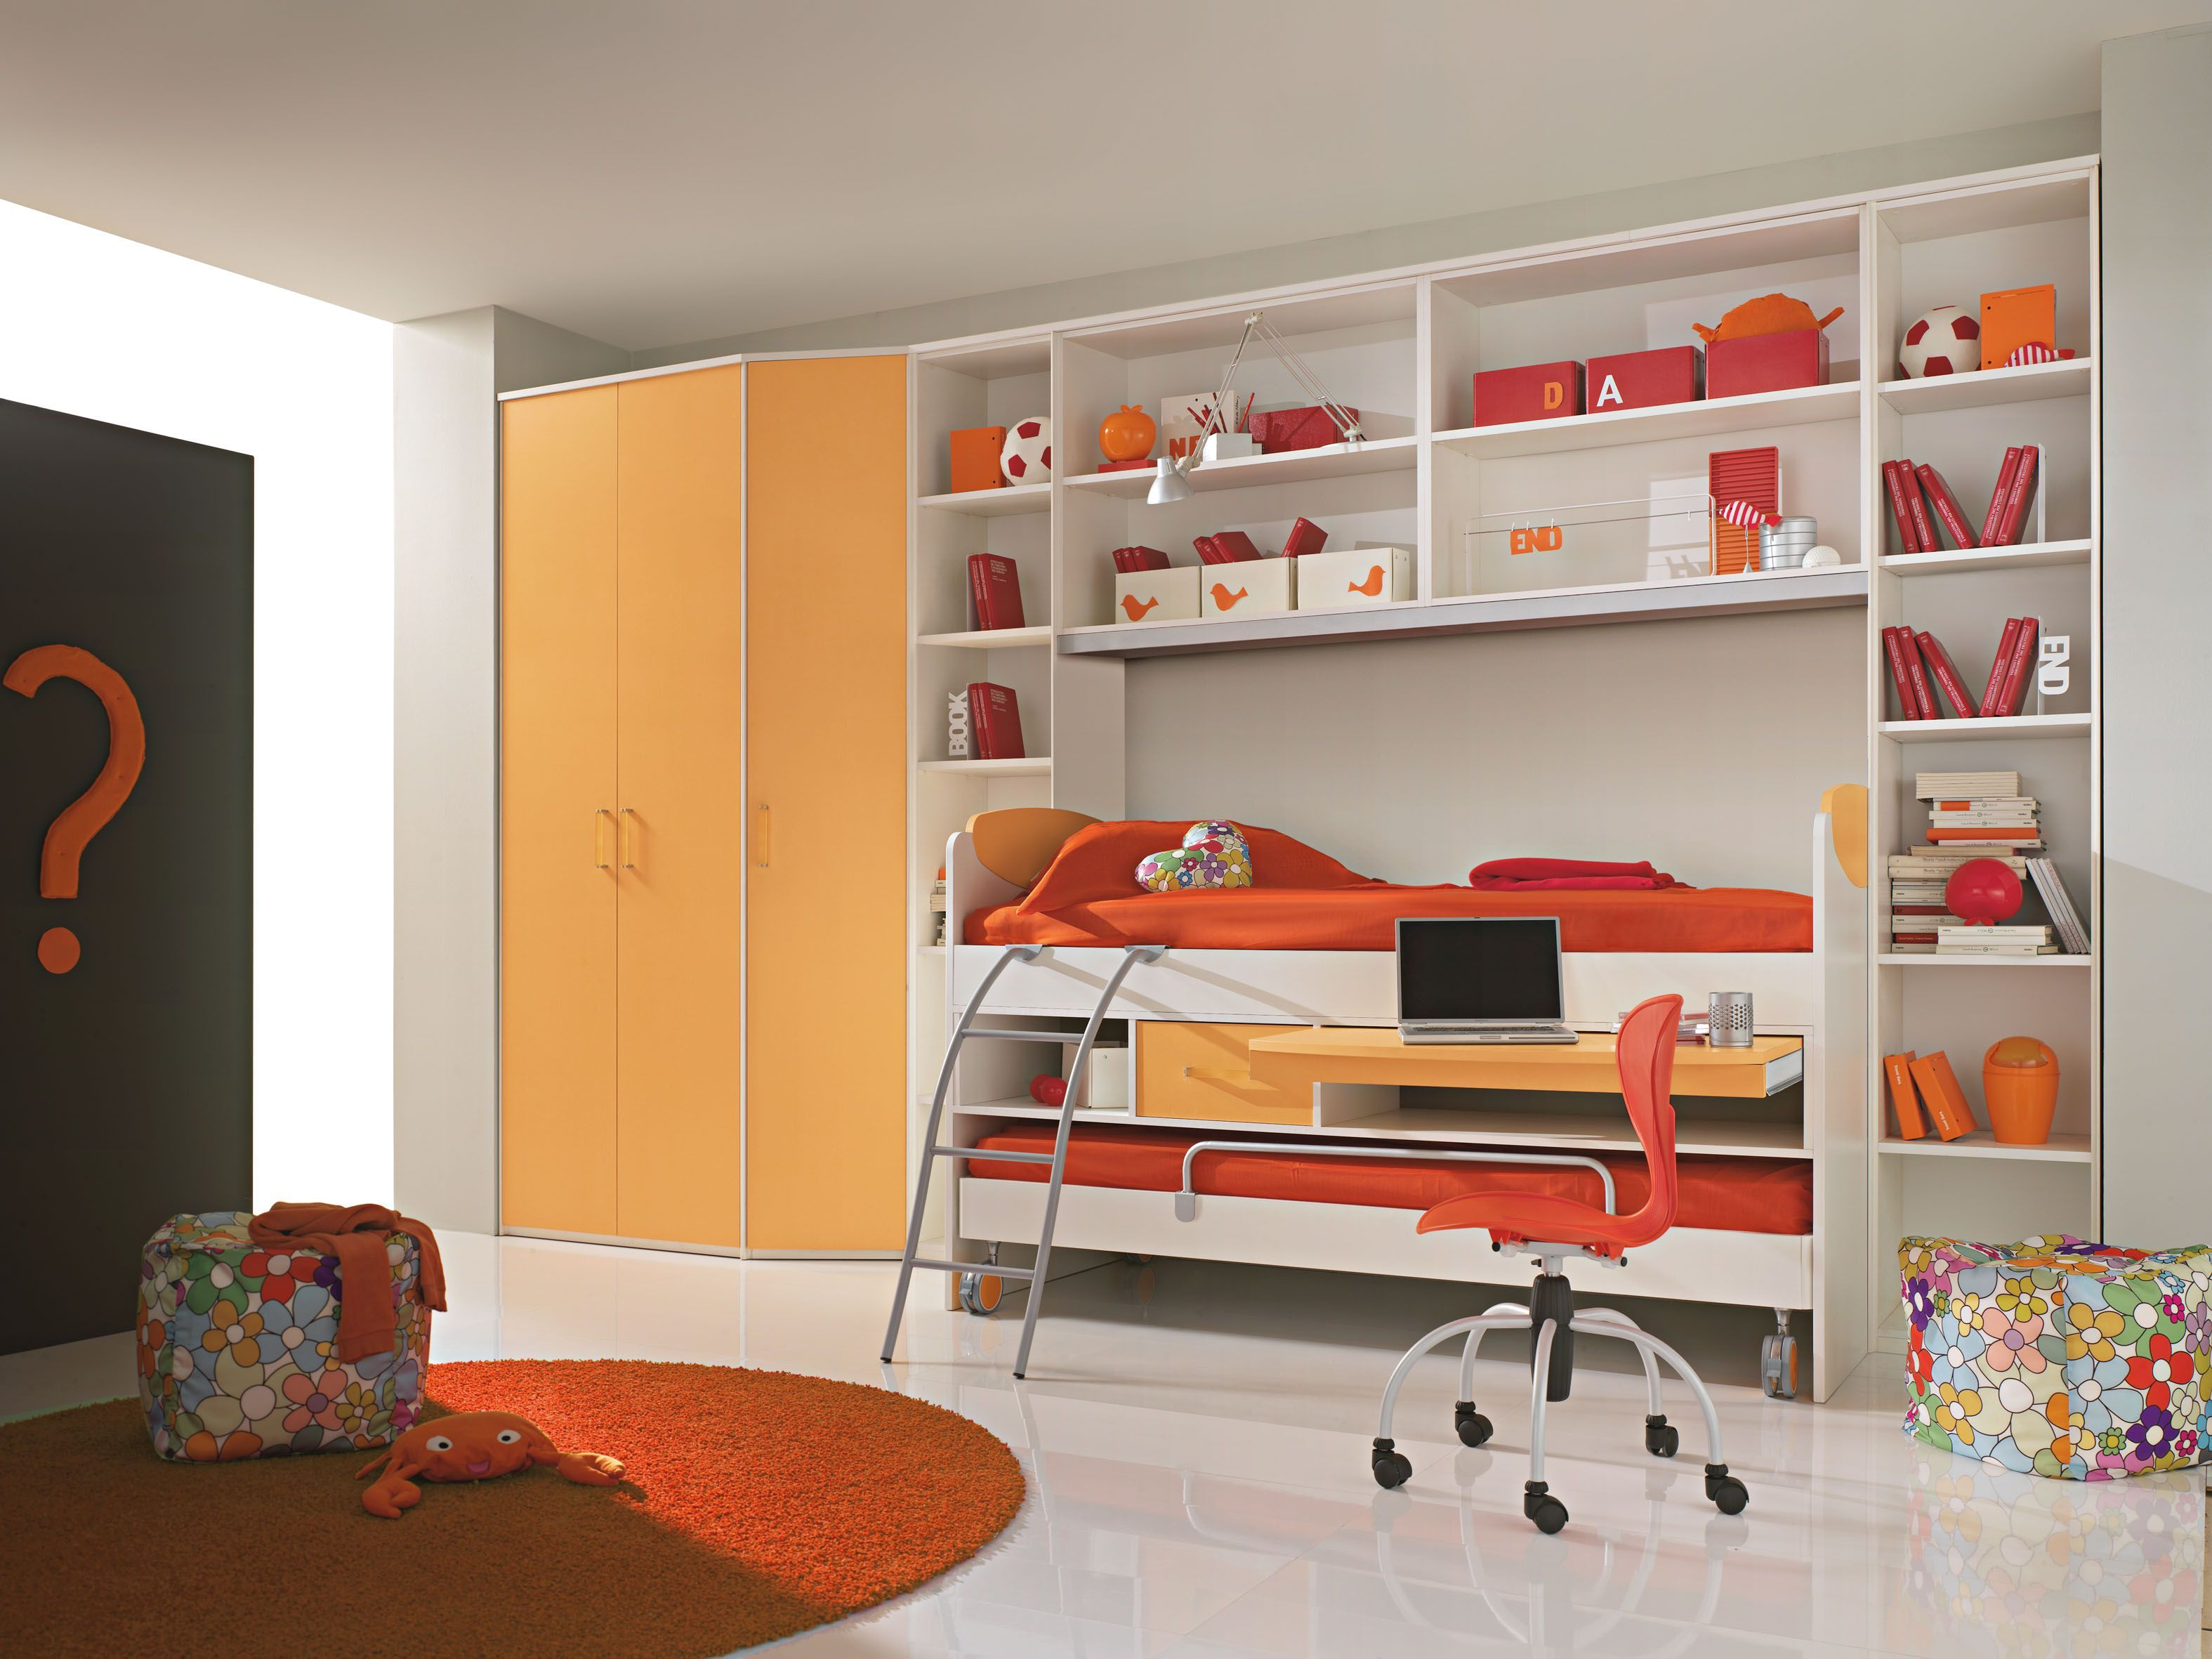 Cool Room Ideas For Teens Room Designs For Teens Cool Bunk Beds With Slides Bunk